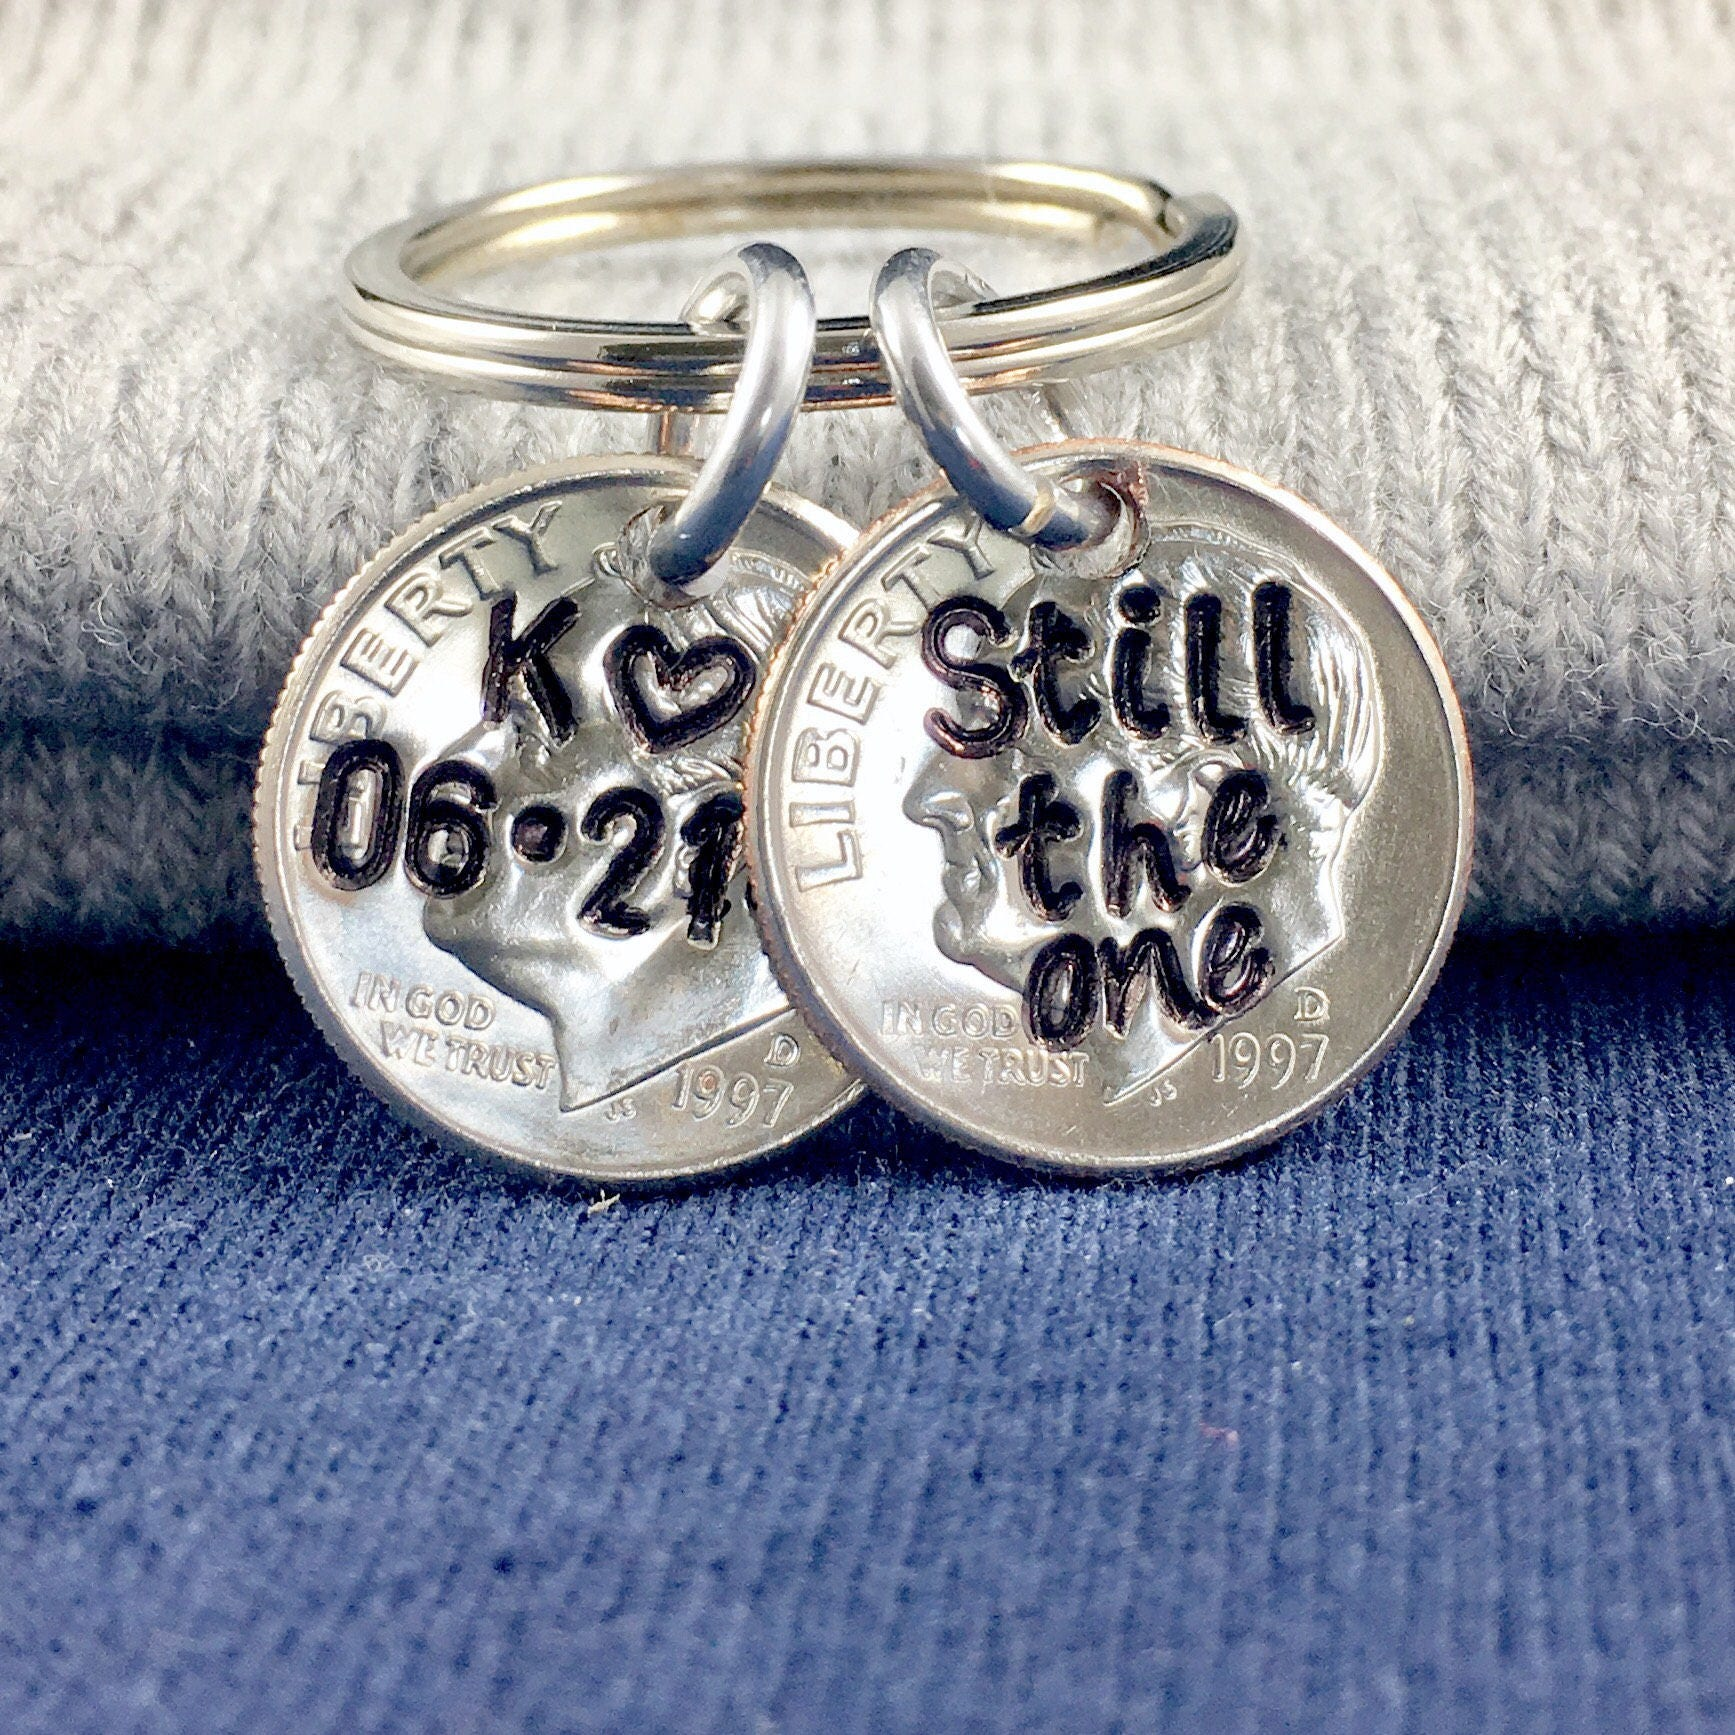 20th Wedding Anniversary Gifts For Wife: 20th Anniversary Gift For Wife 20 Year Wedding Anniversary